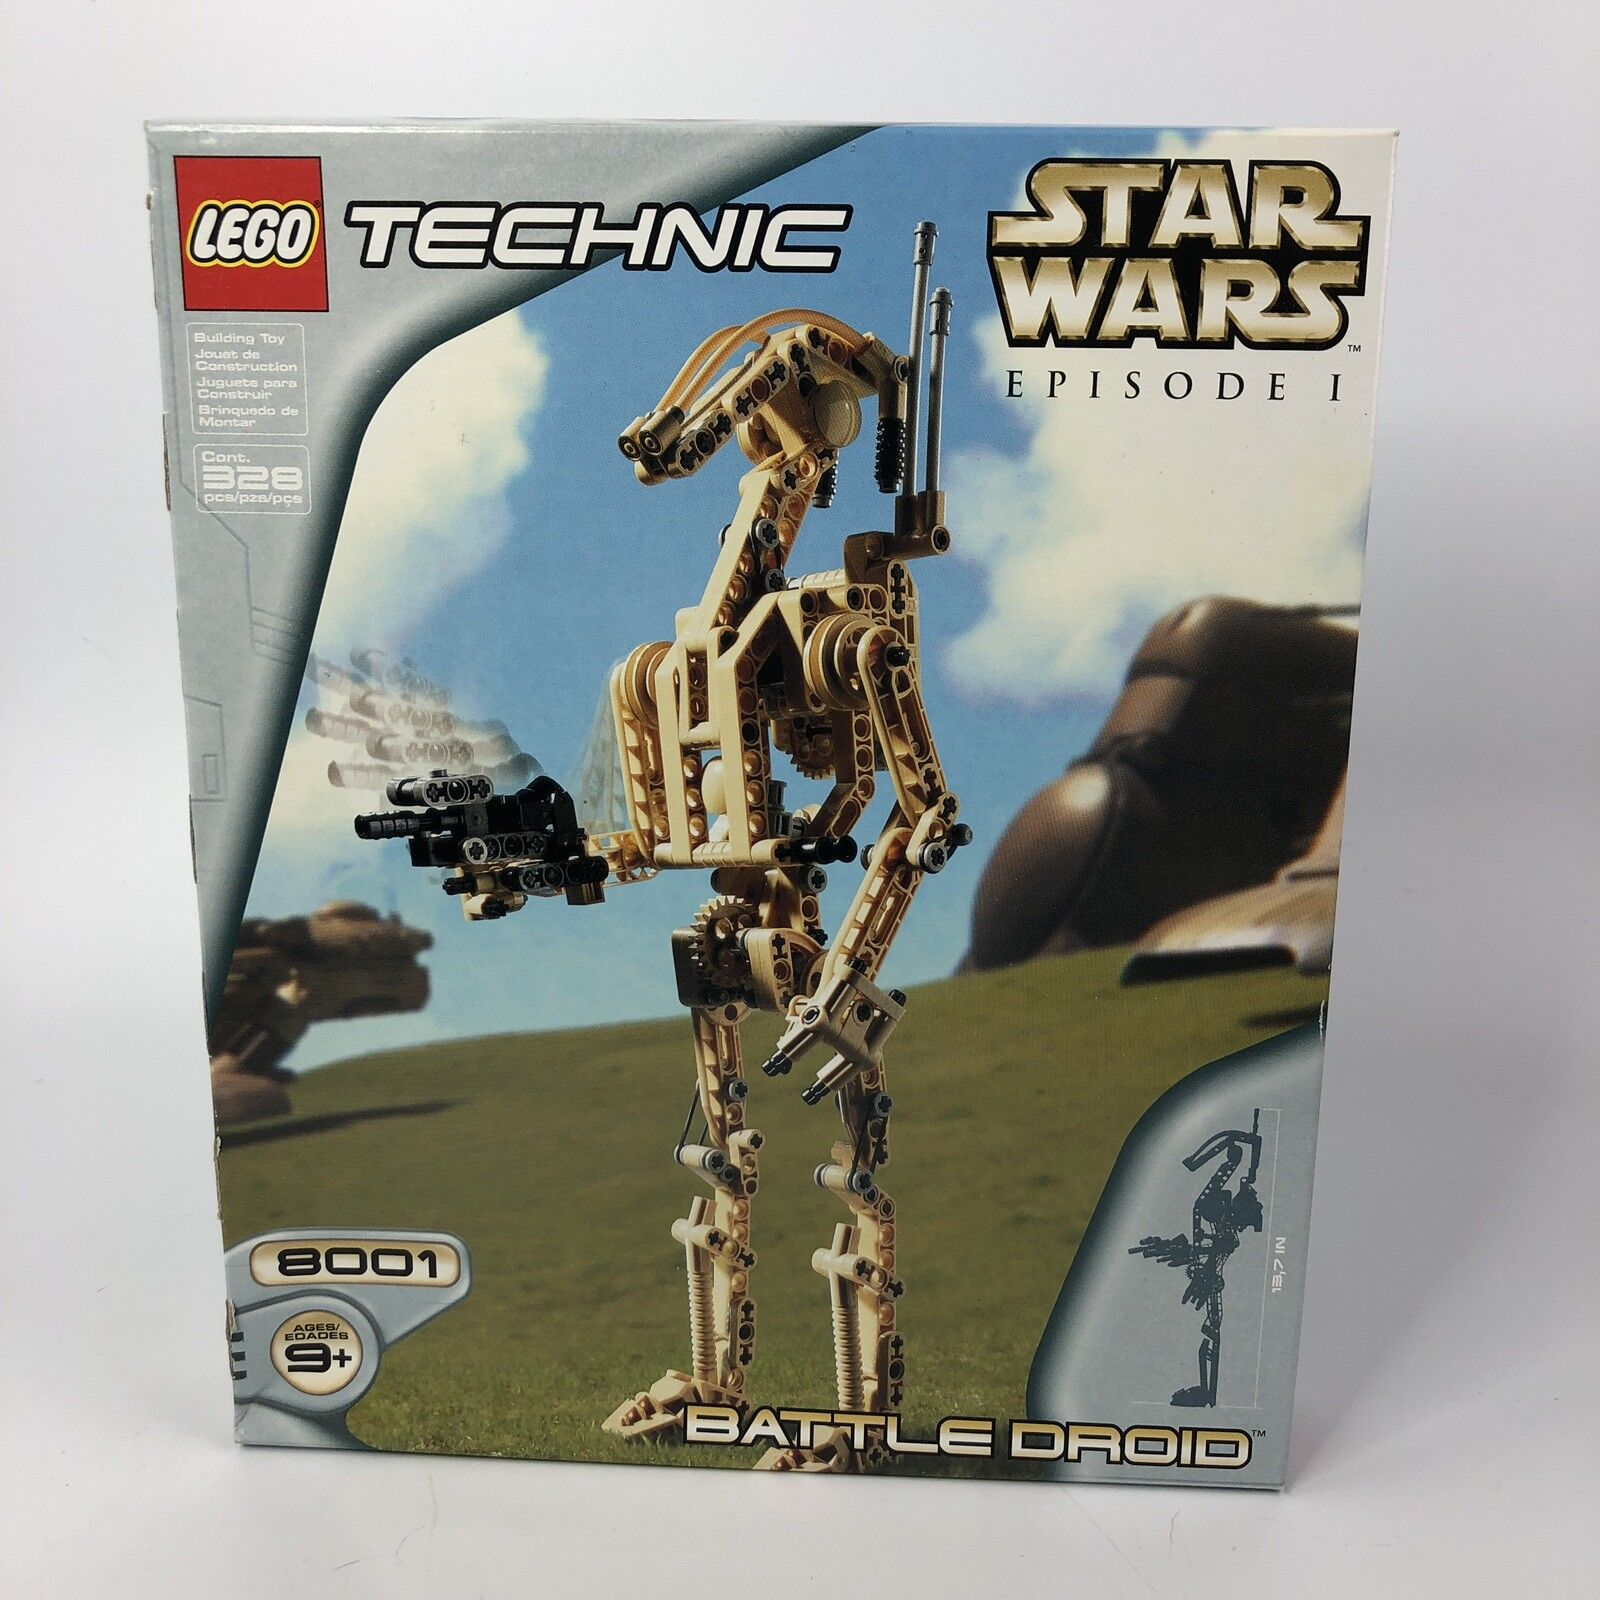 Nuovo LEGO Technic Star Wars BATTLE DROID 328 Pieces Episode 1 Sealed 8001